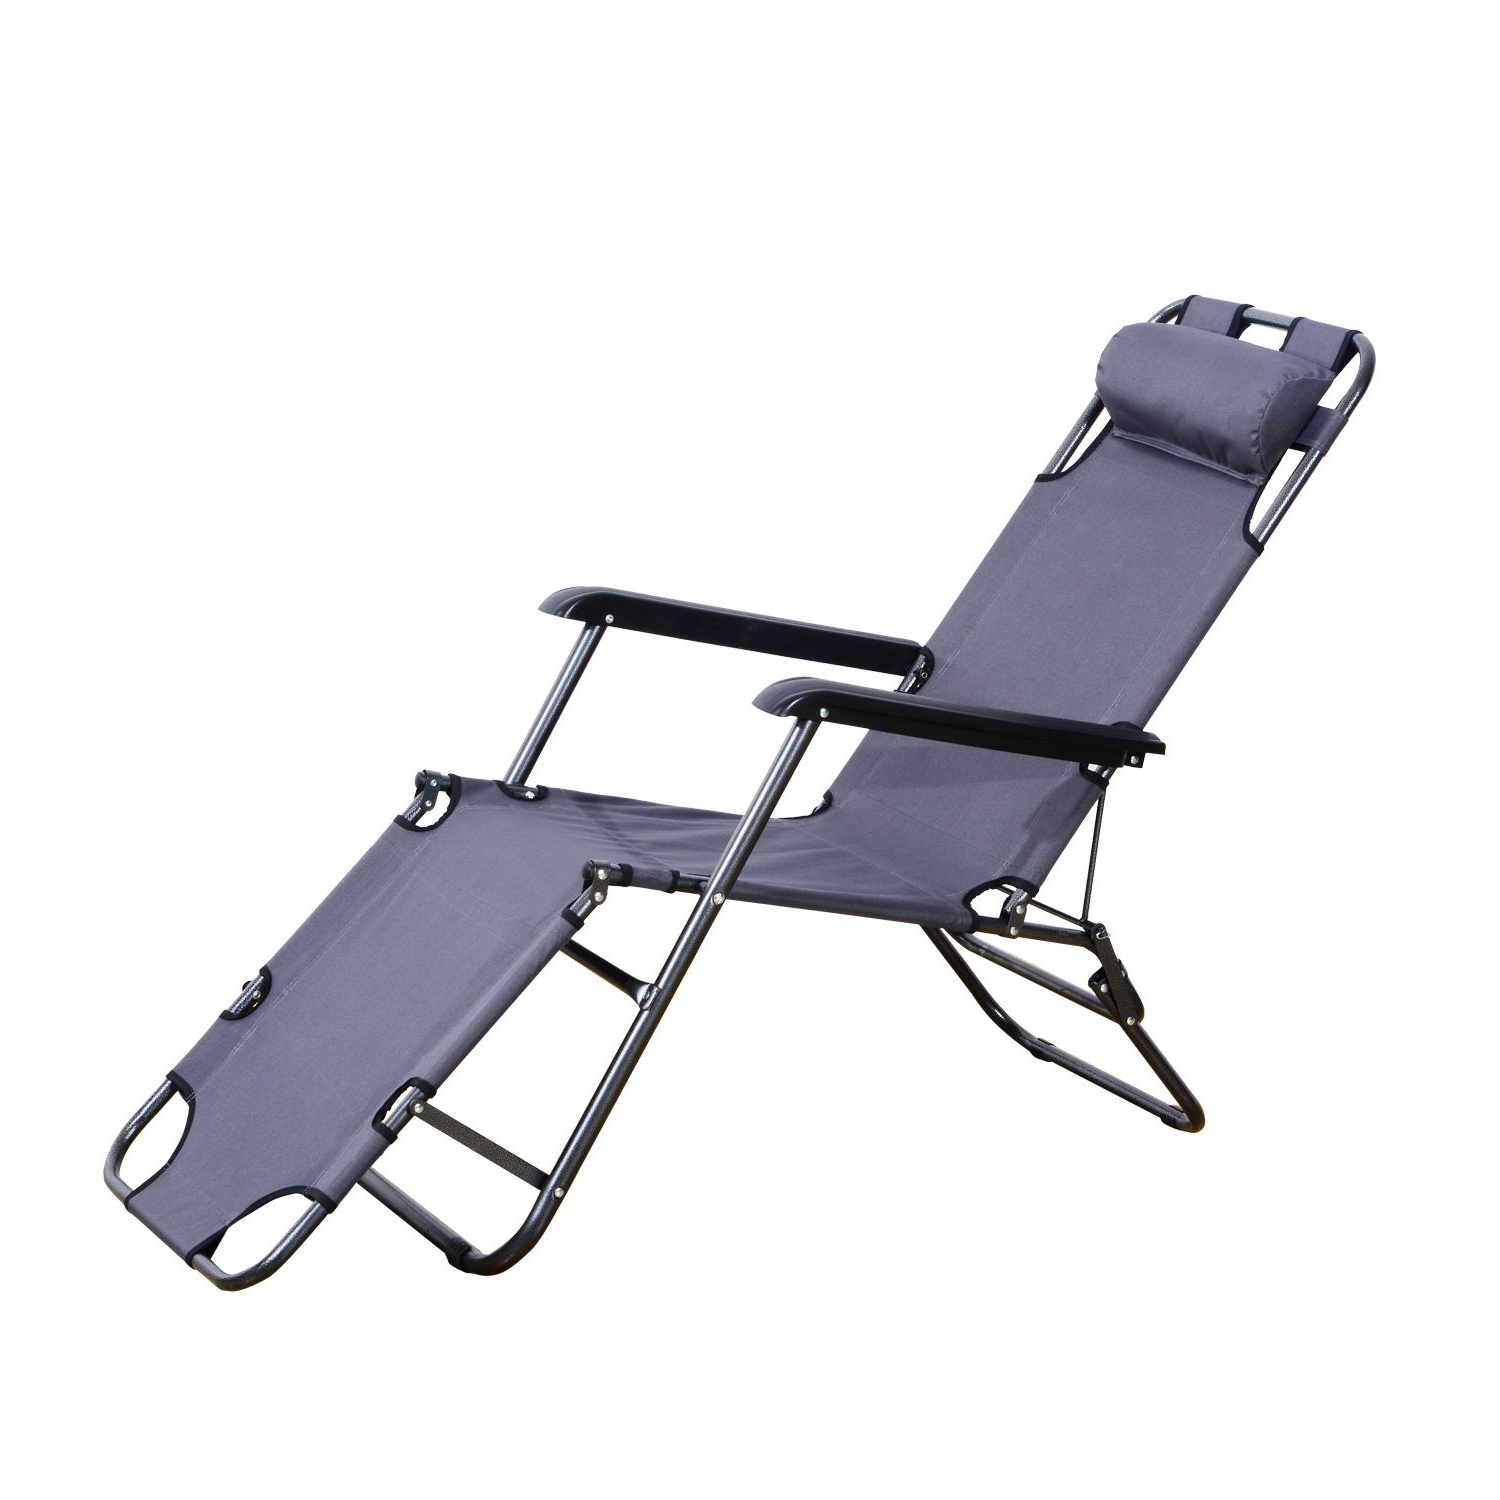 Popular Portable Extendable Folding Reclining Chairs In Outsunny Folding Lounge Chair Chaise Portable Recliner Sun Lounger Outdoor Garden Patio Grey (View 20 of 25)